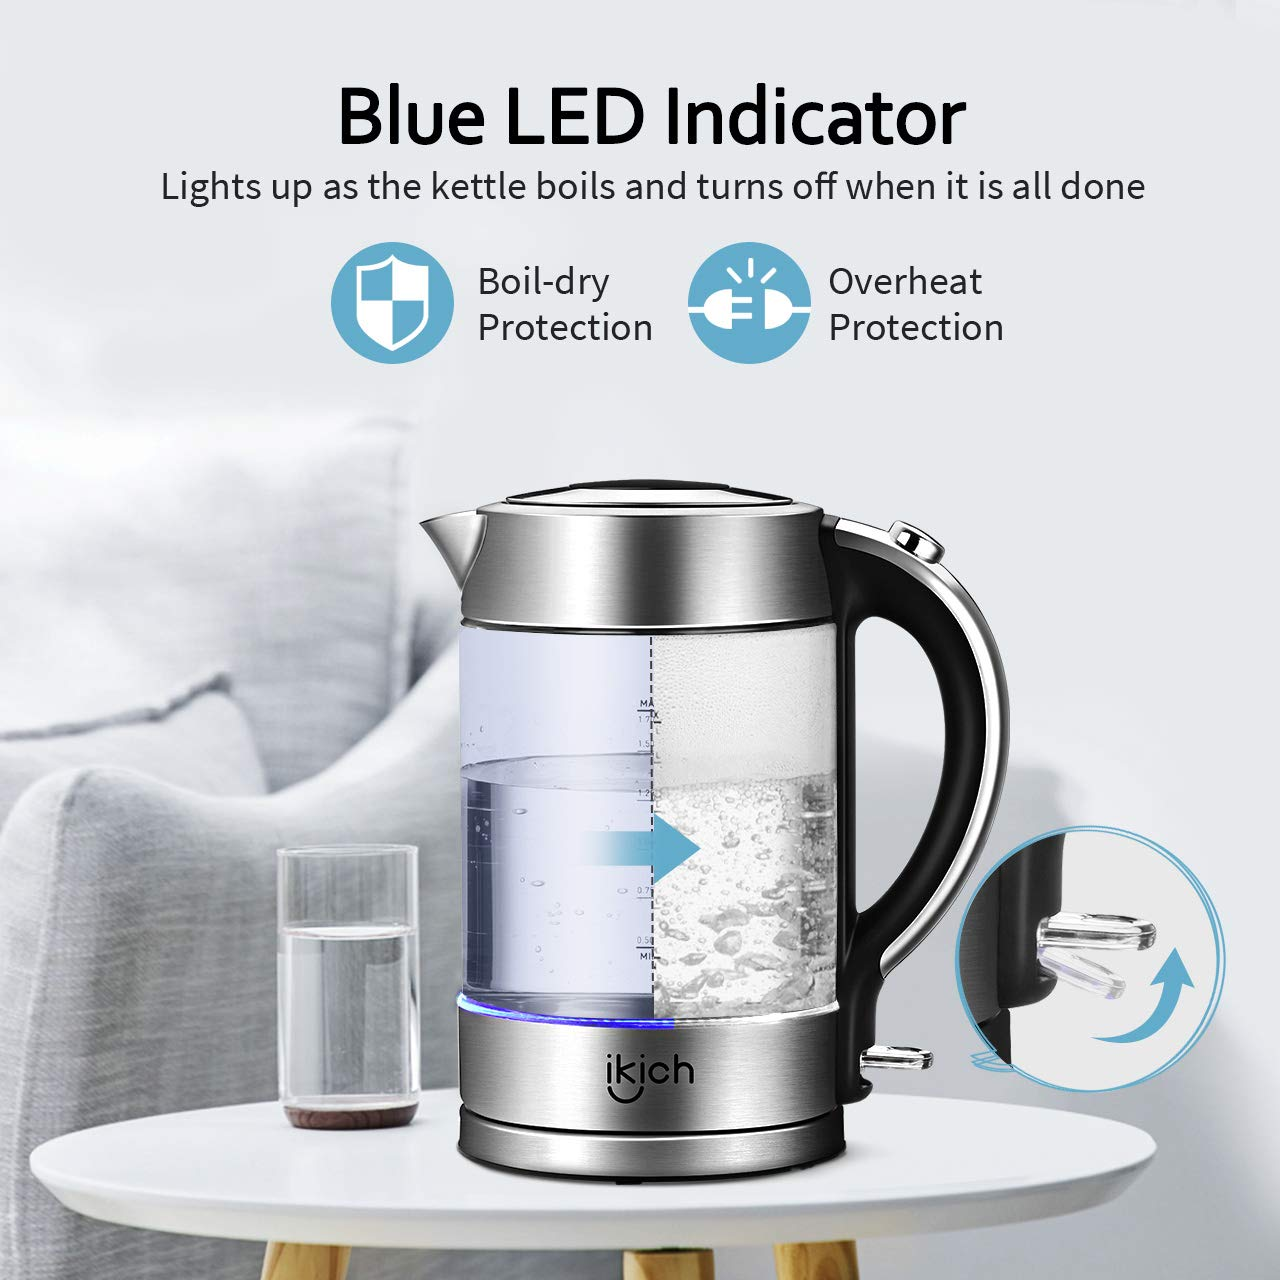 Electric Kettle, IKICH 1.7L BPA-Free Glass Kettle Tea Heater, Hot Water Boiler with LED Light, Auto Shut-Off & Boil-Dry Protection, Stainless Steel Inner Lid & Bottom by IKICH (Image #4)